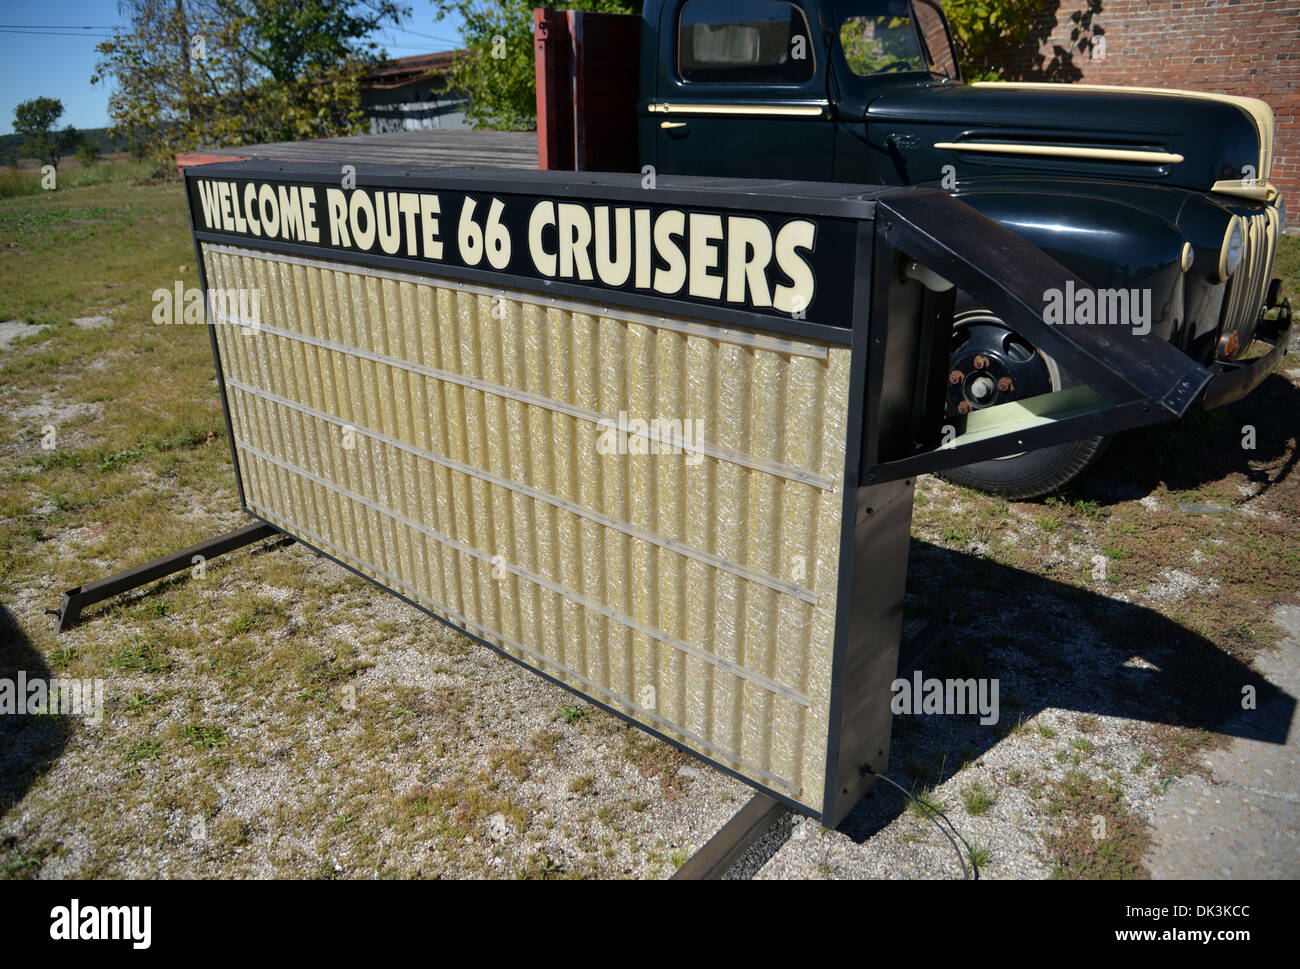 old light up 'Welcome Route 66 Cruisers' road side sign in Galena, Kansas with vintage truck - Stock Image